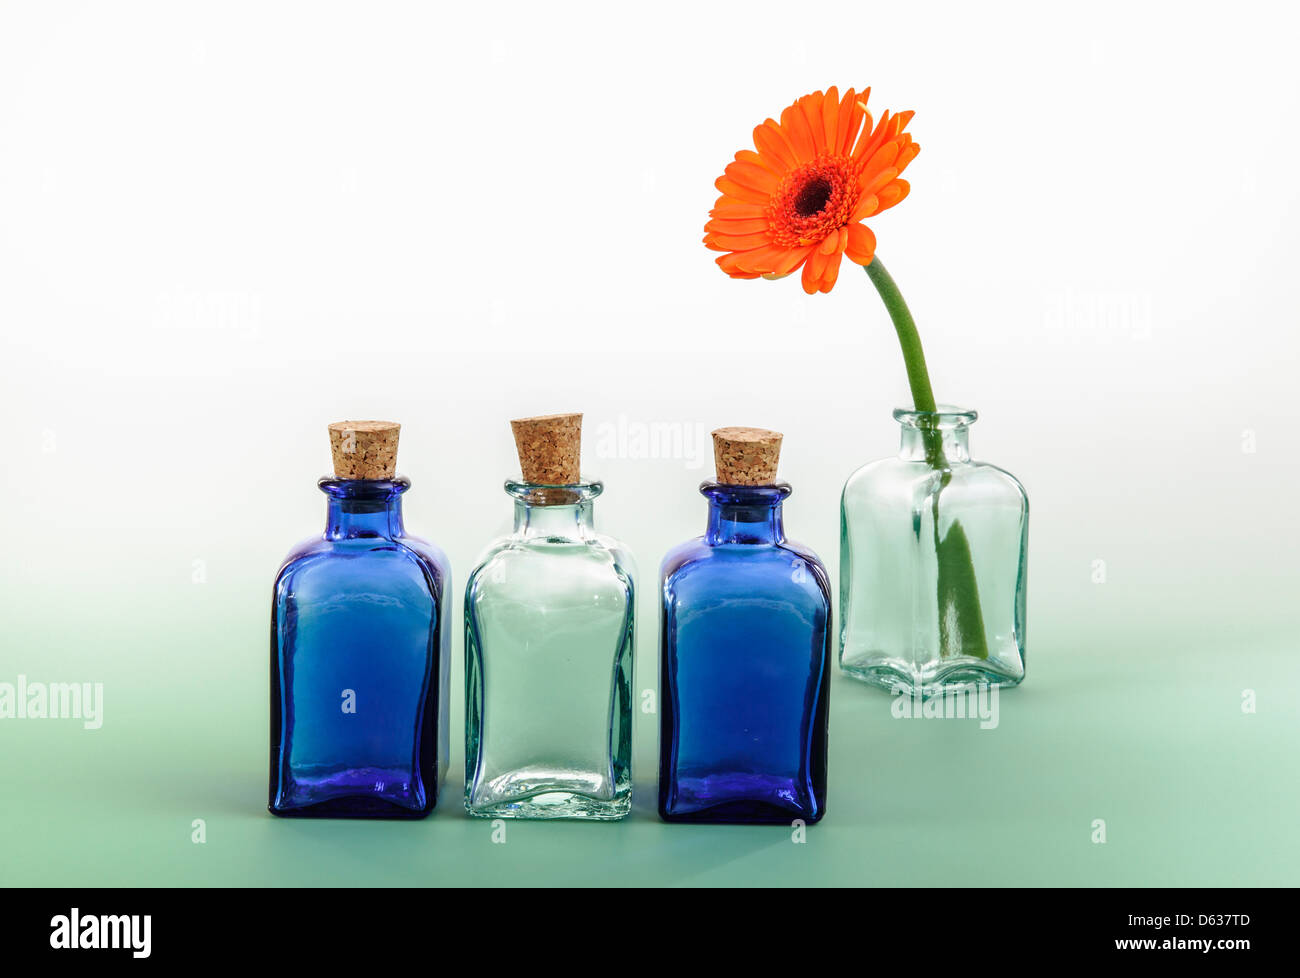 Colored mini glass bottles and flower - Stock Image